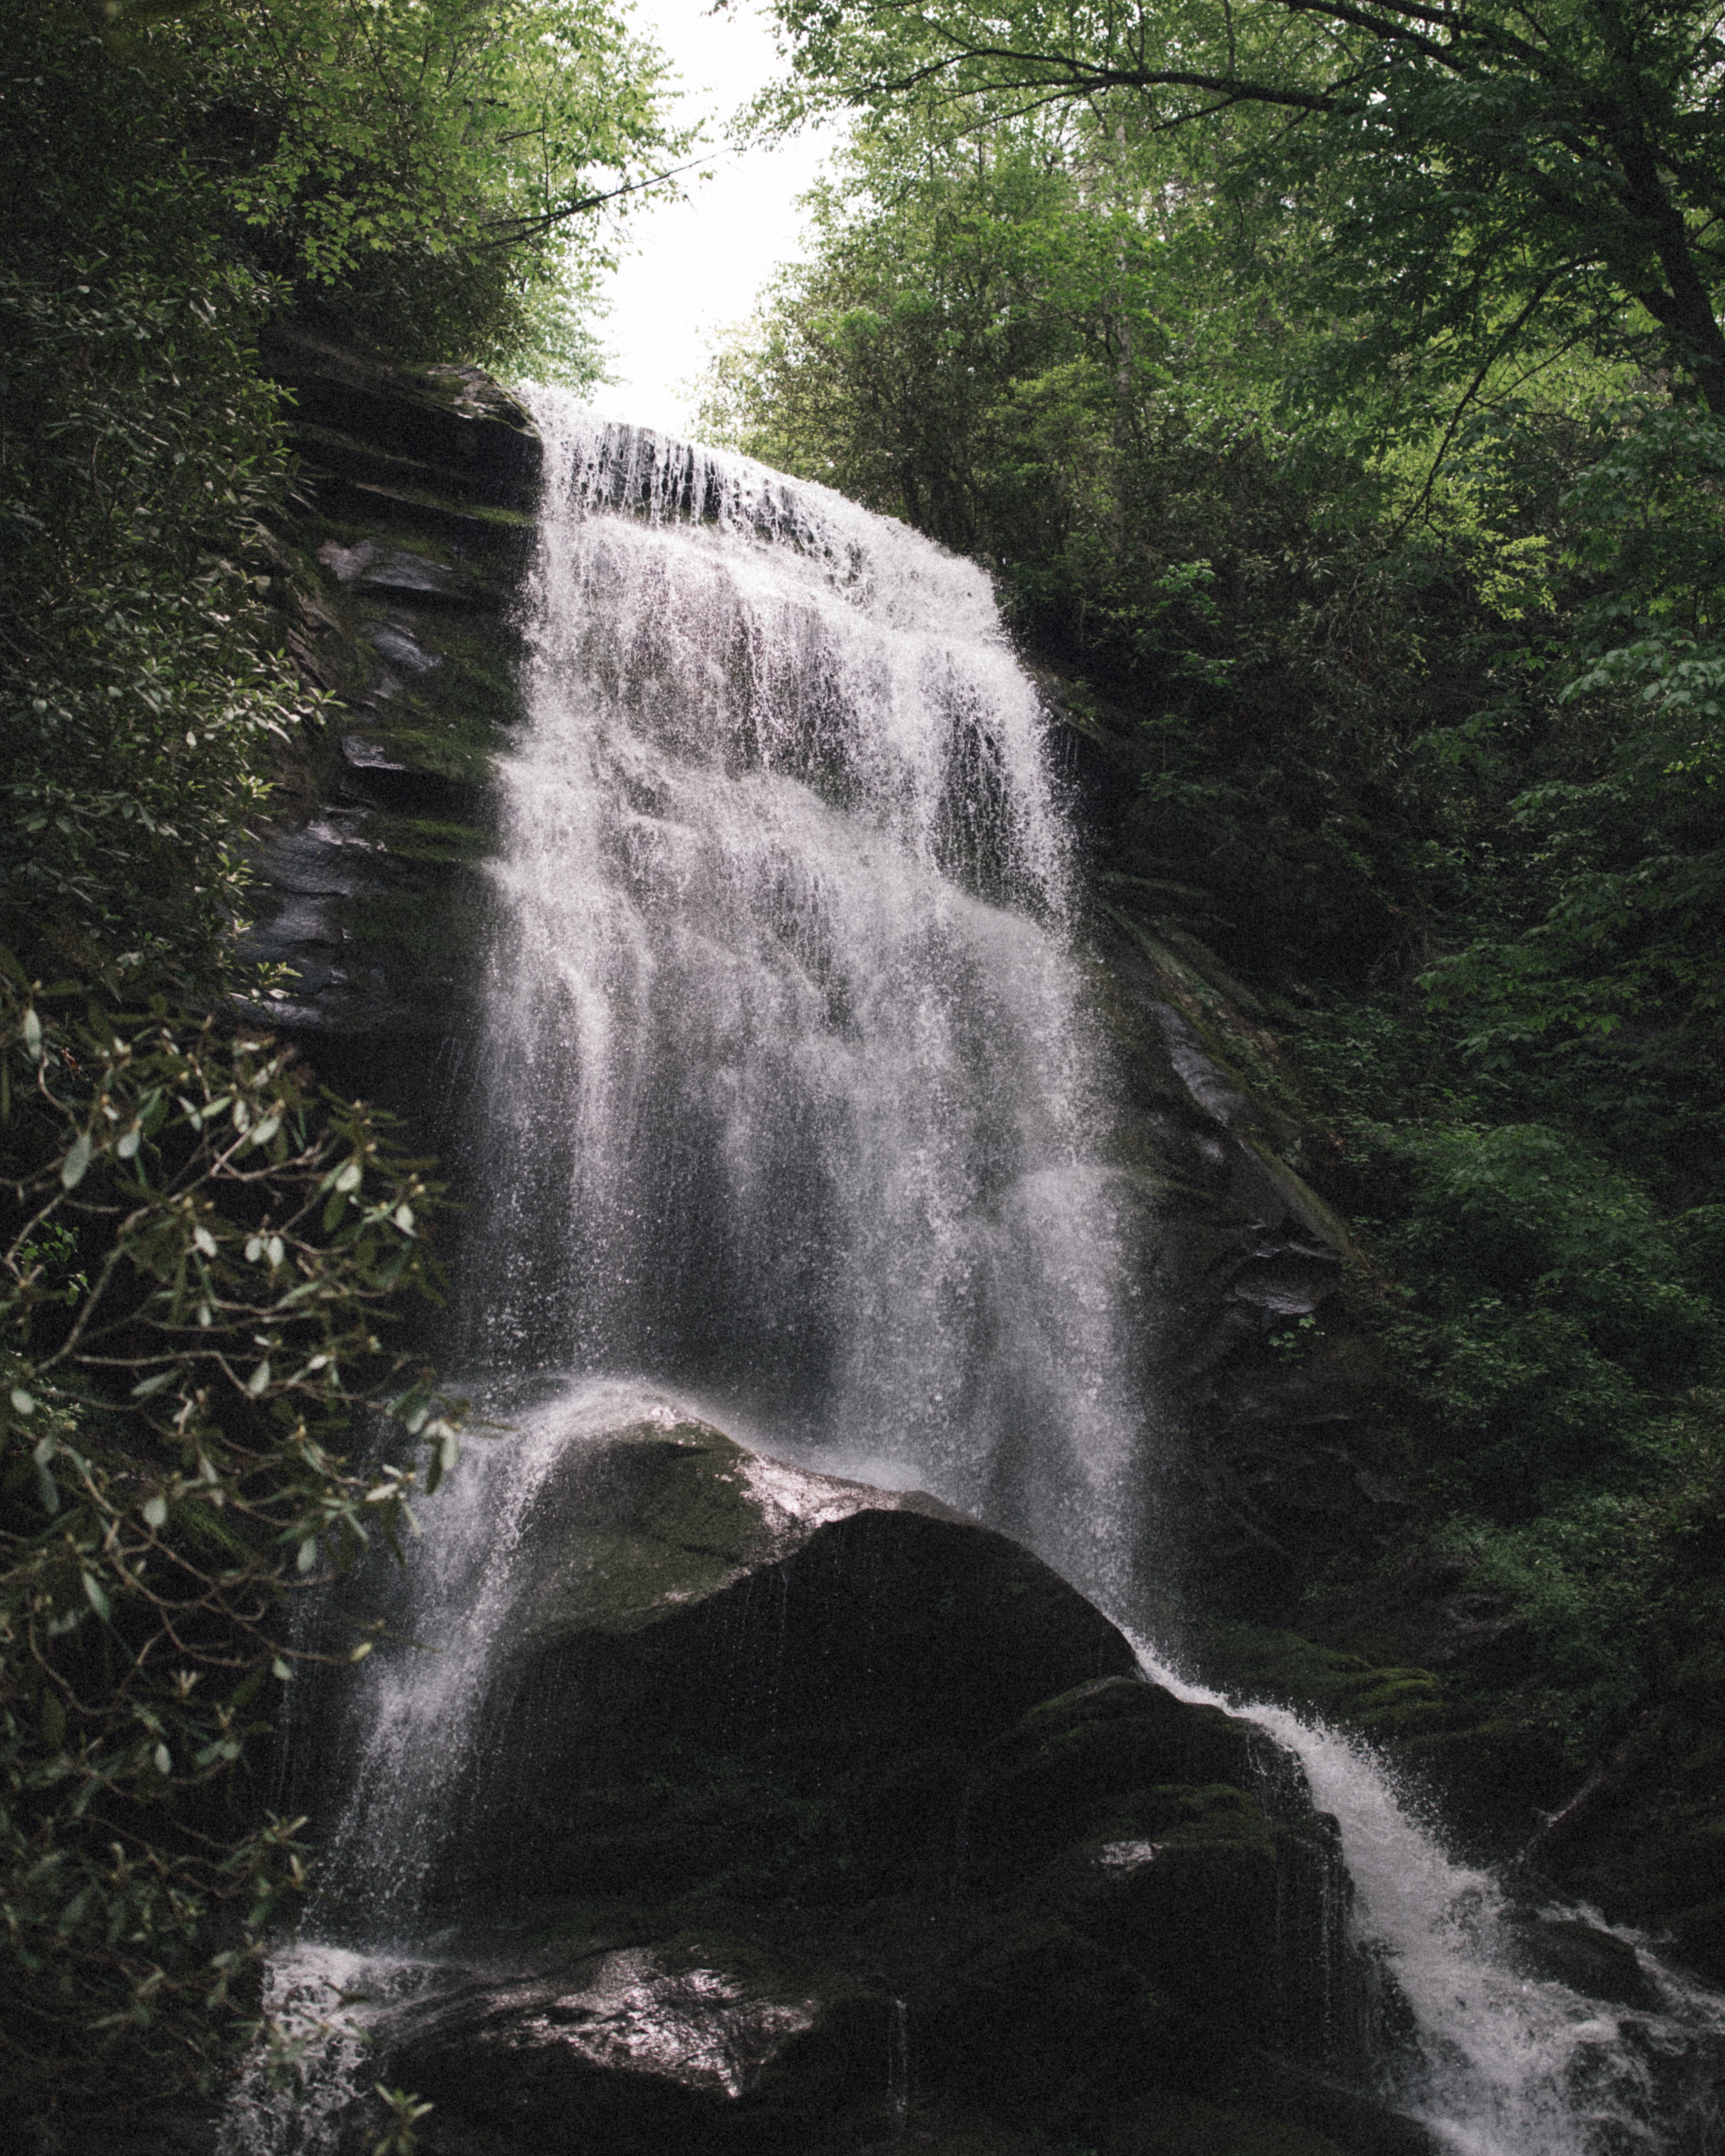 water falling above